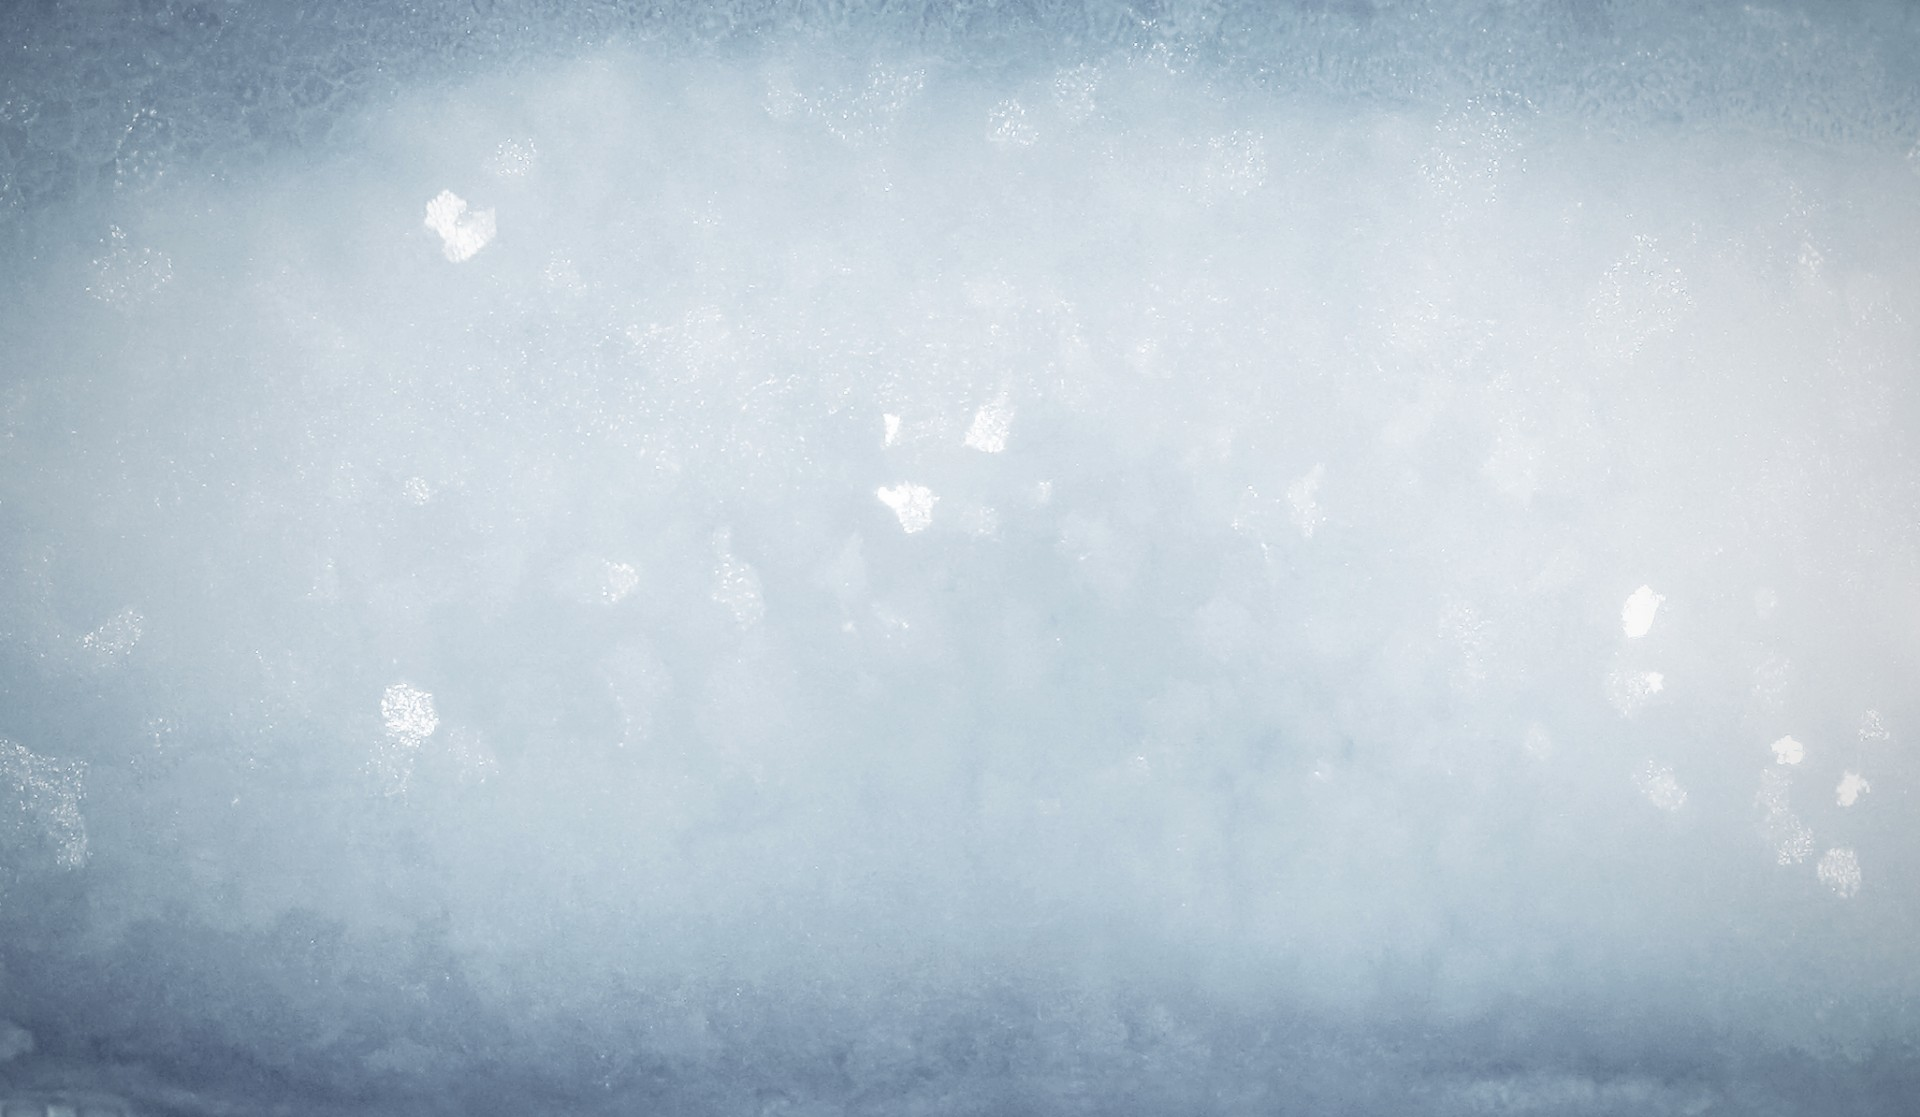 Ice Background Free Stock Photo - Public Domain Pictures